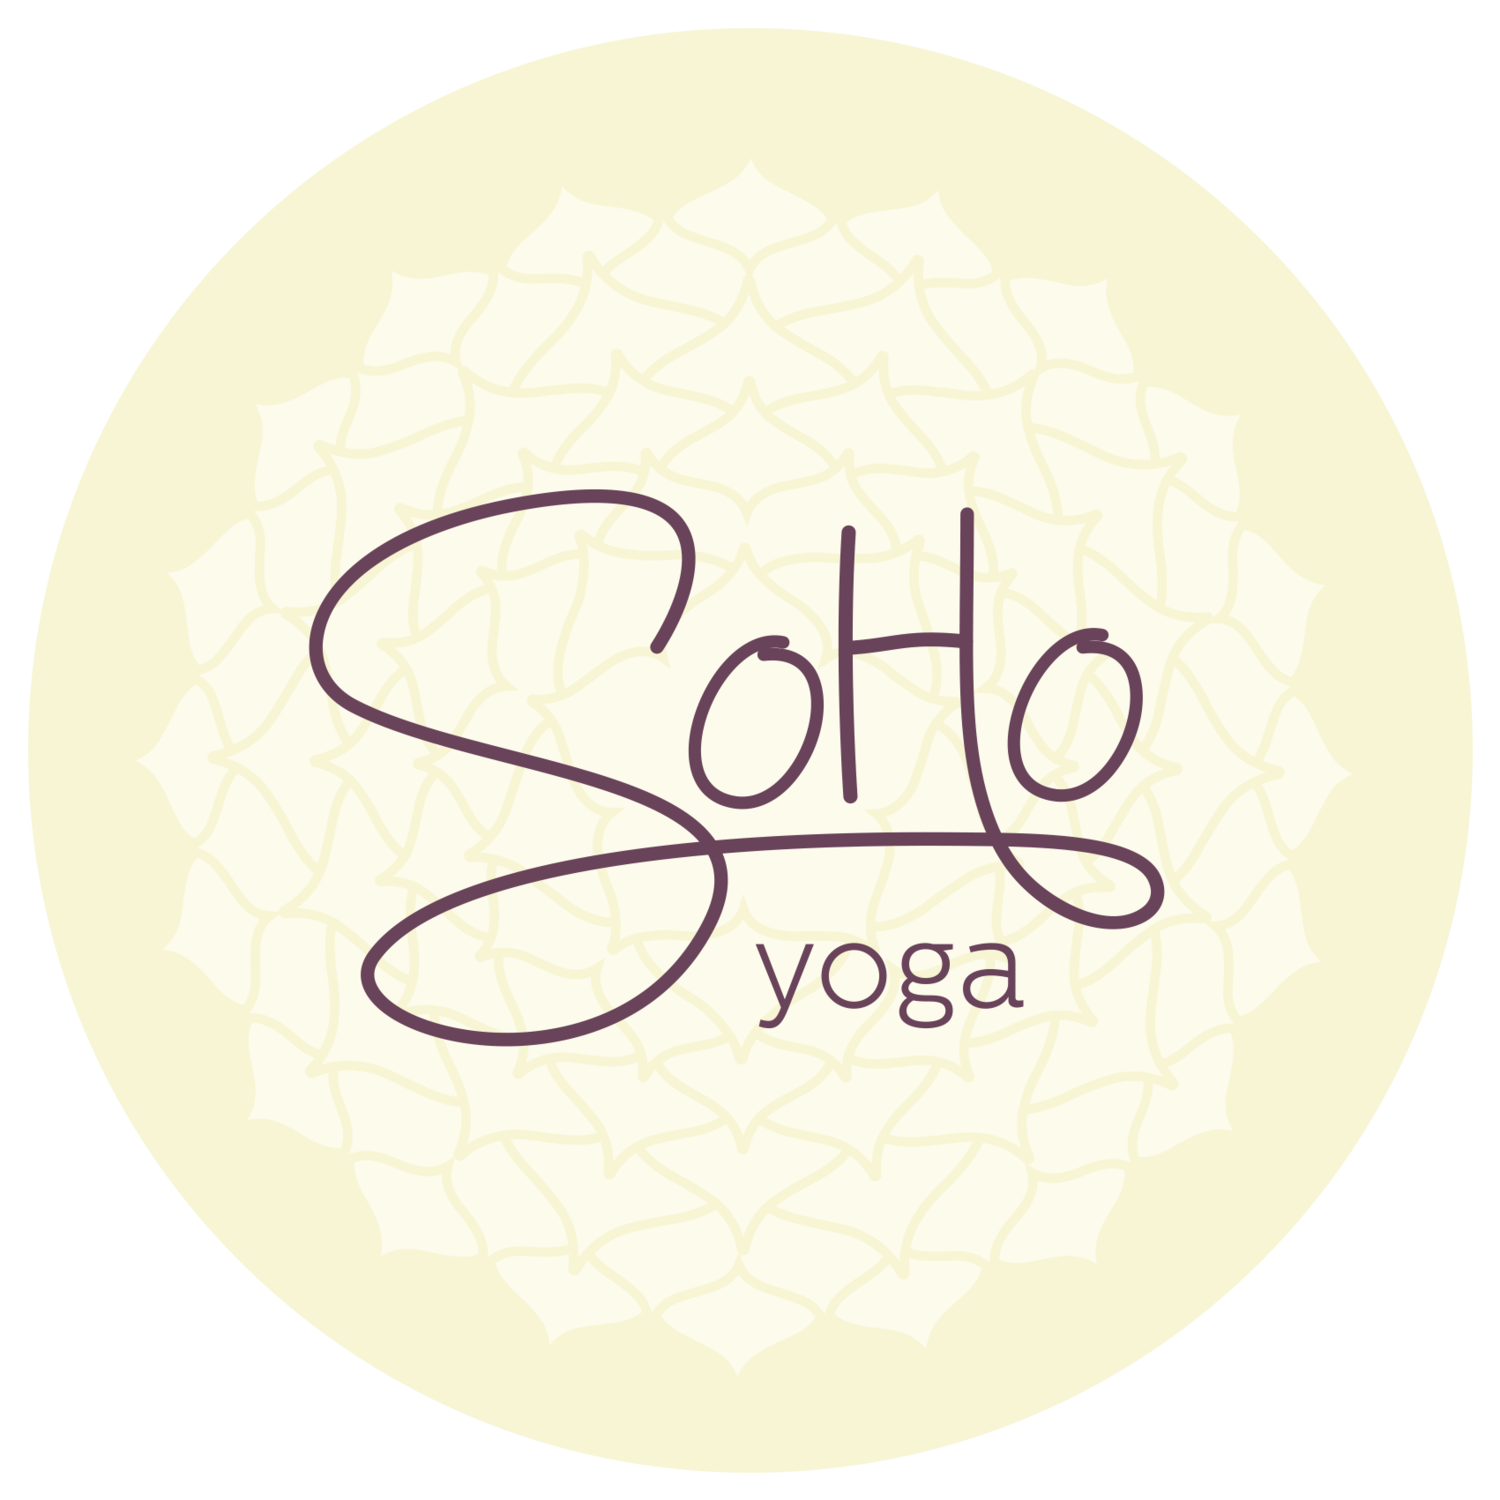 SoHo Yoga | Ascot, Fortitude Valley & Newmarket | Brisbane